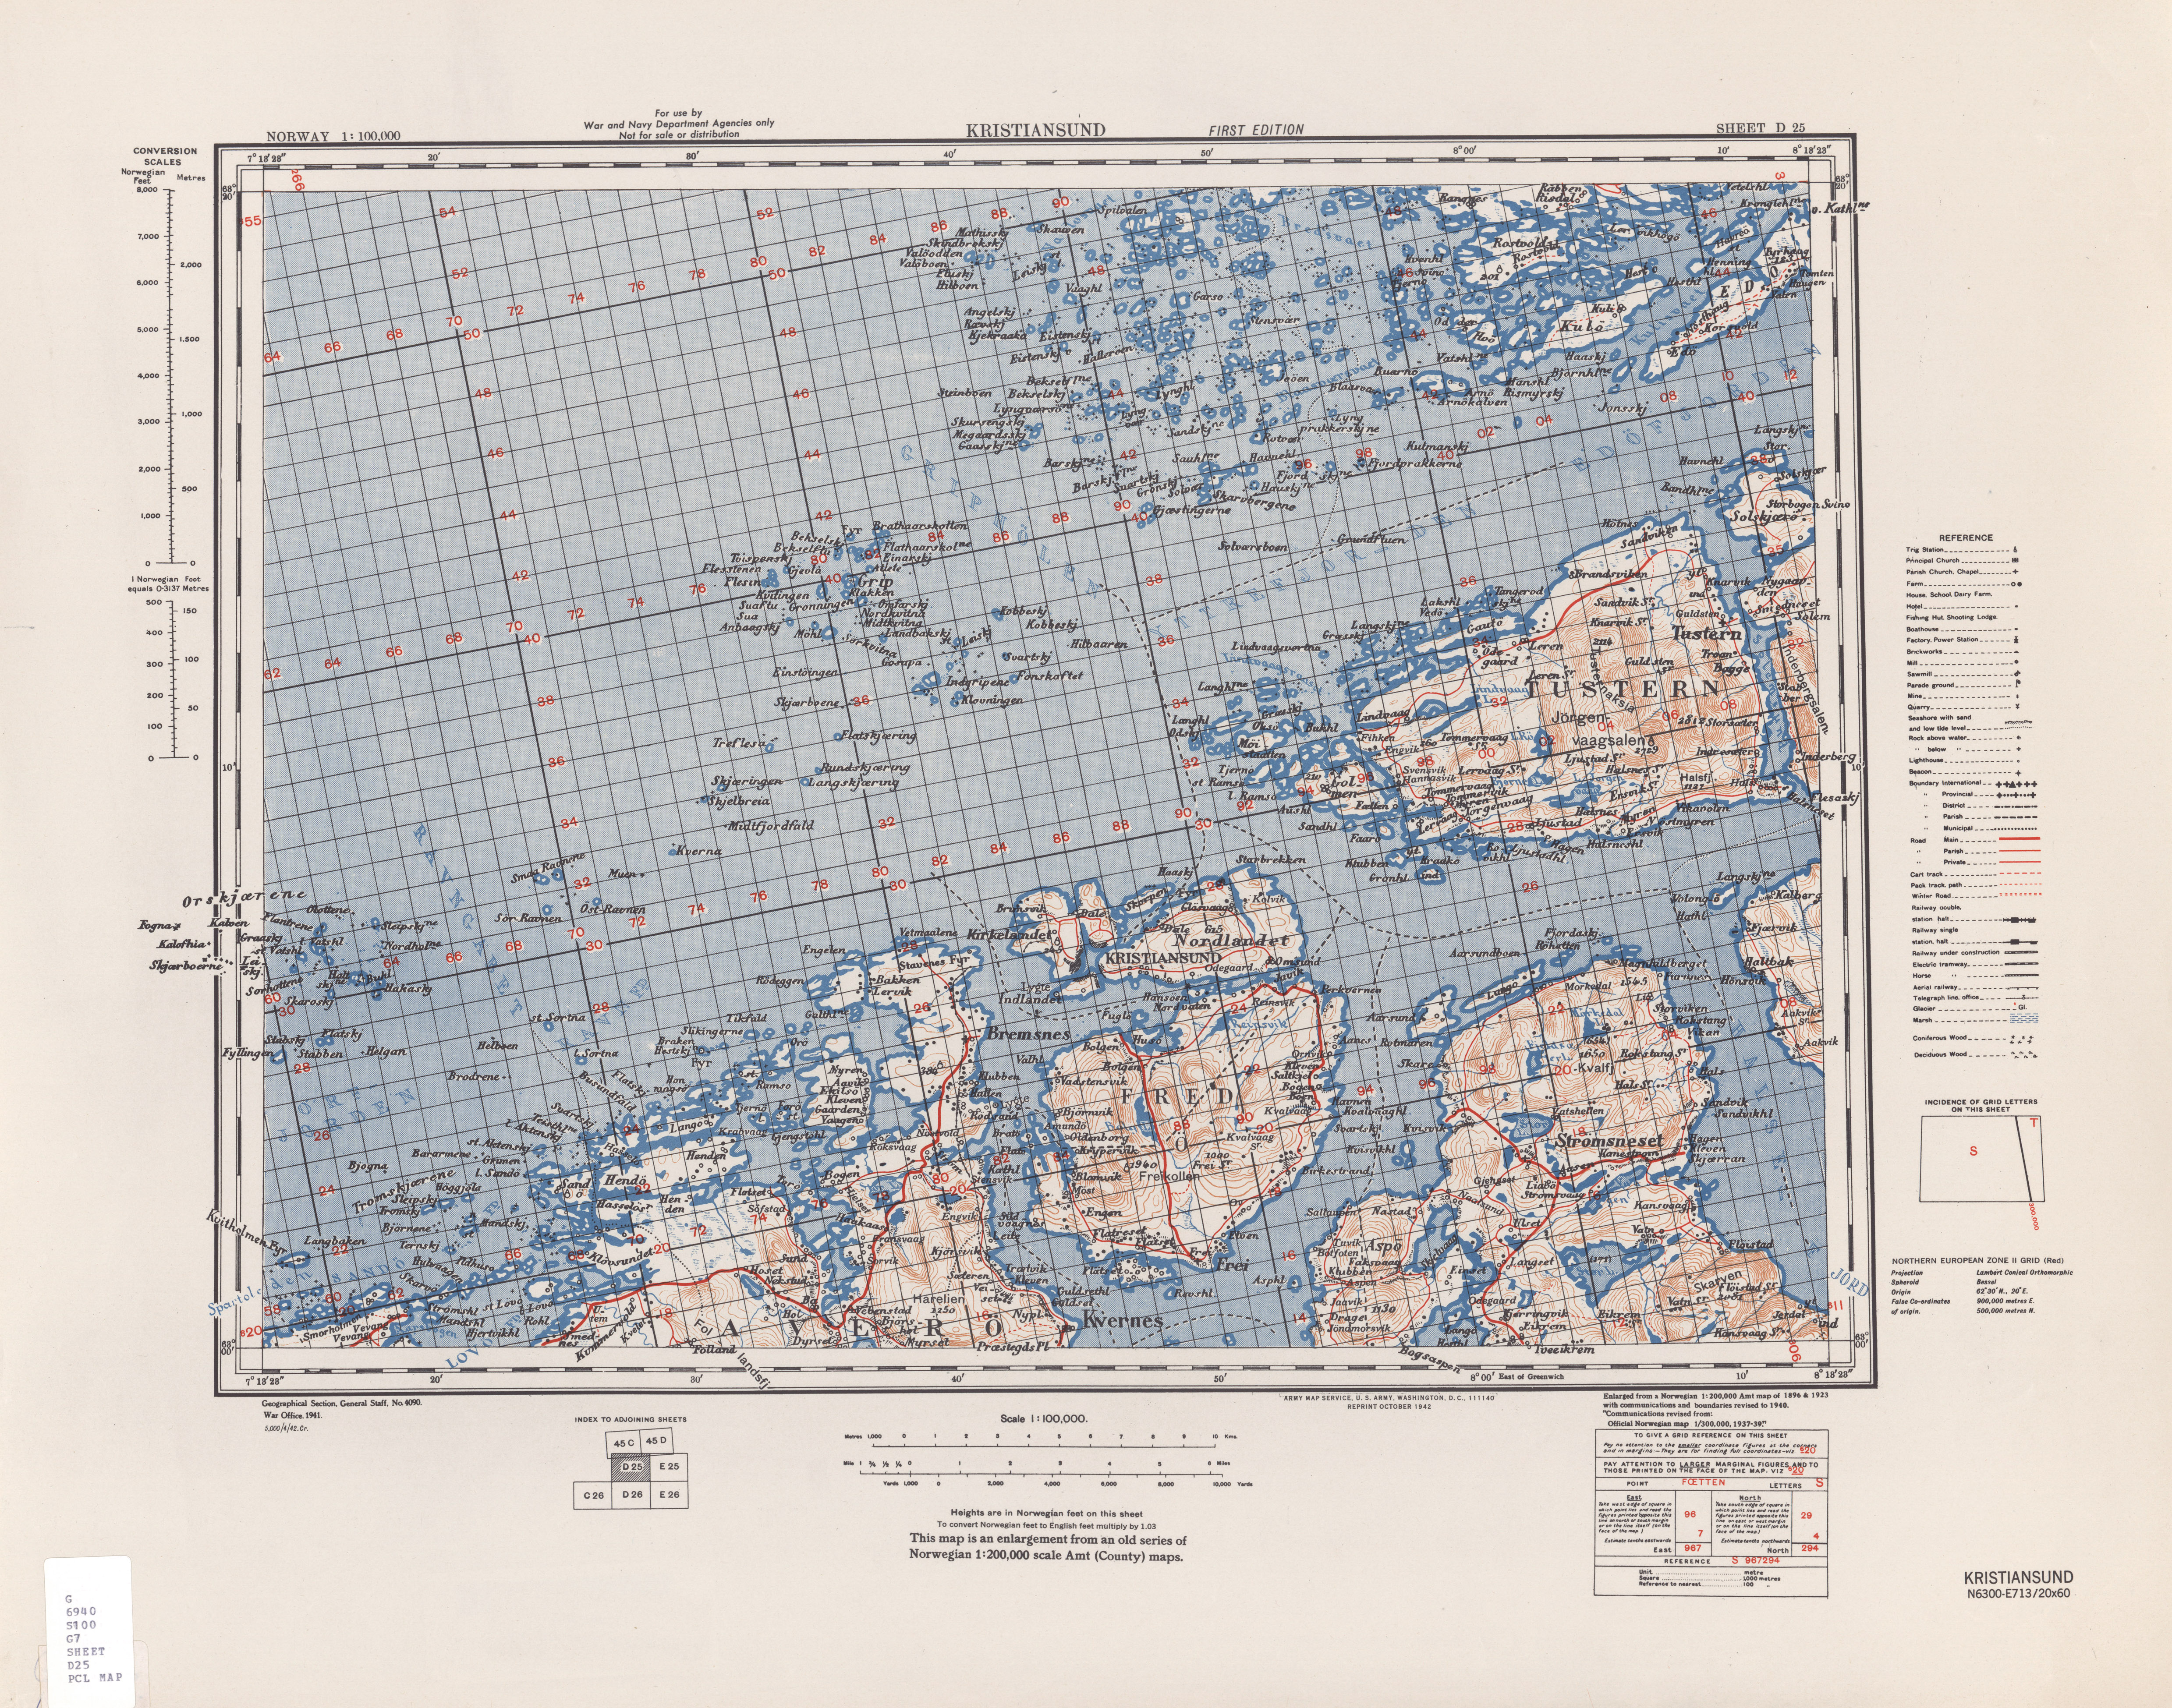 Norway AMS Topographic Maps PerryCastañeda Map Collection UT - Norway map kristiansund